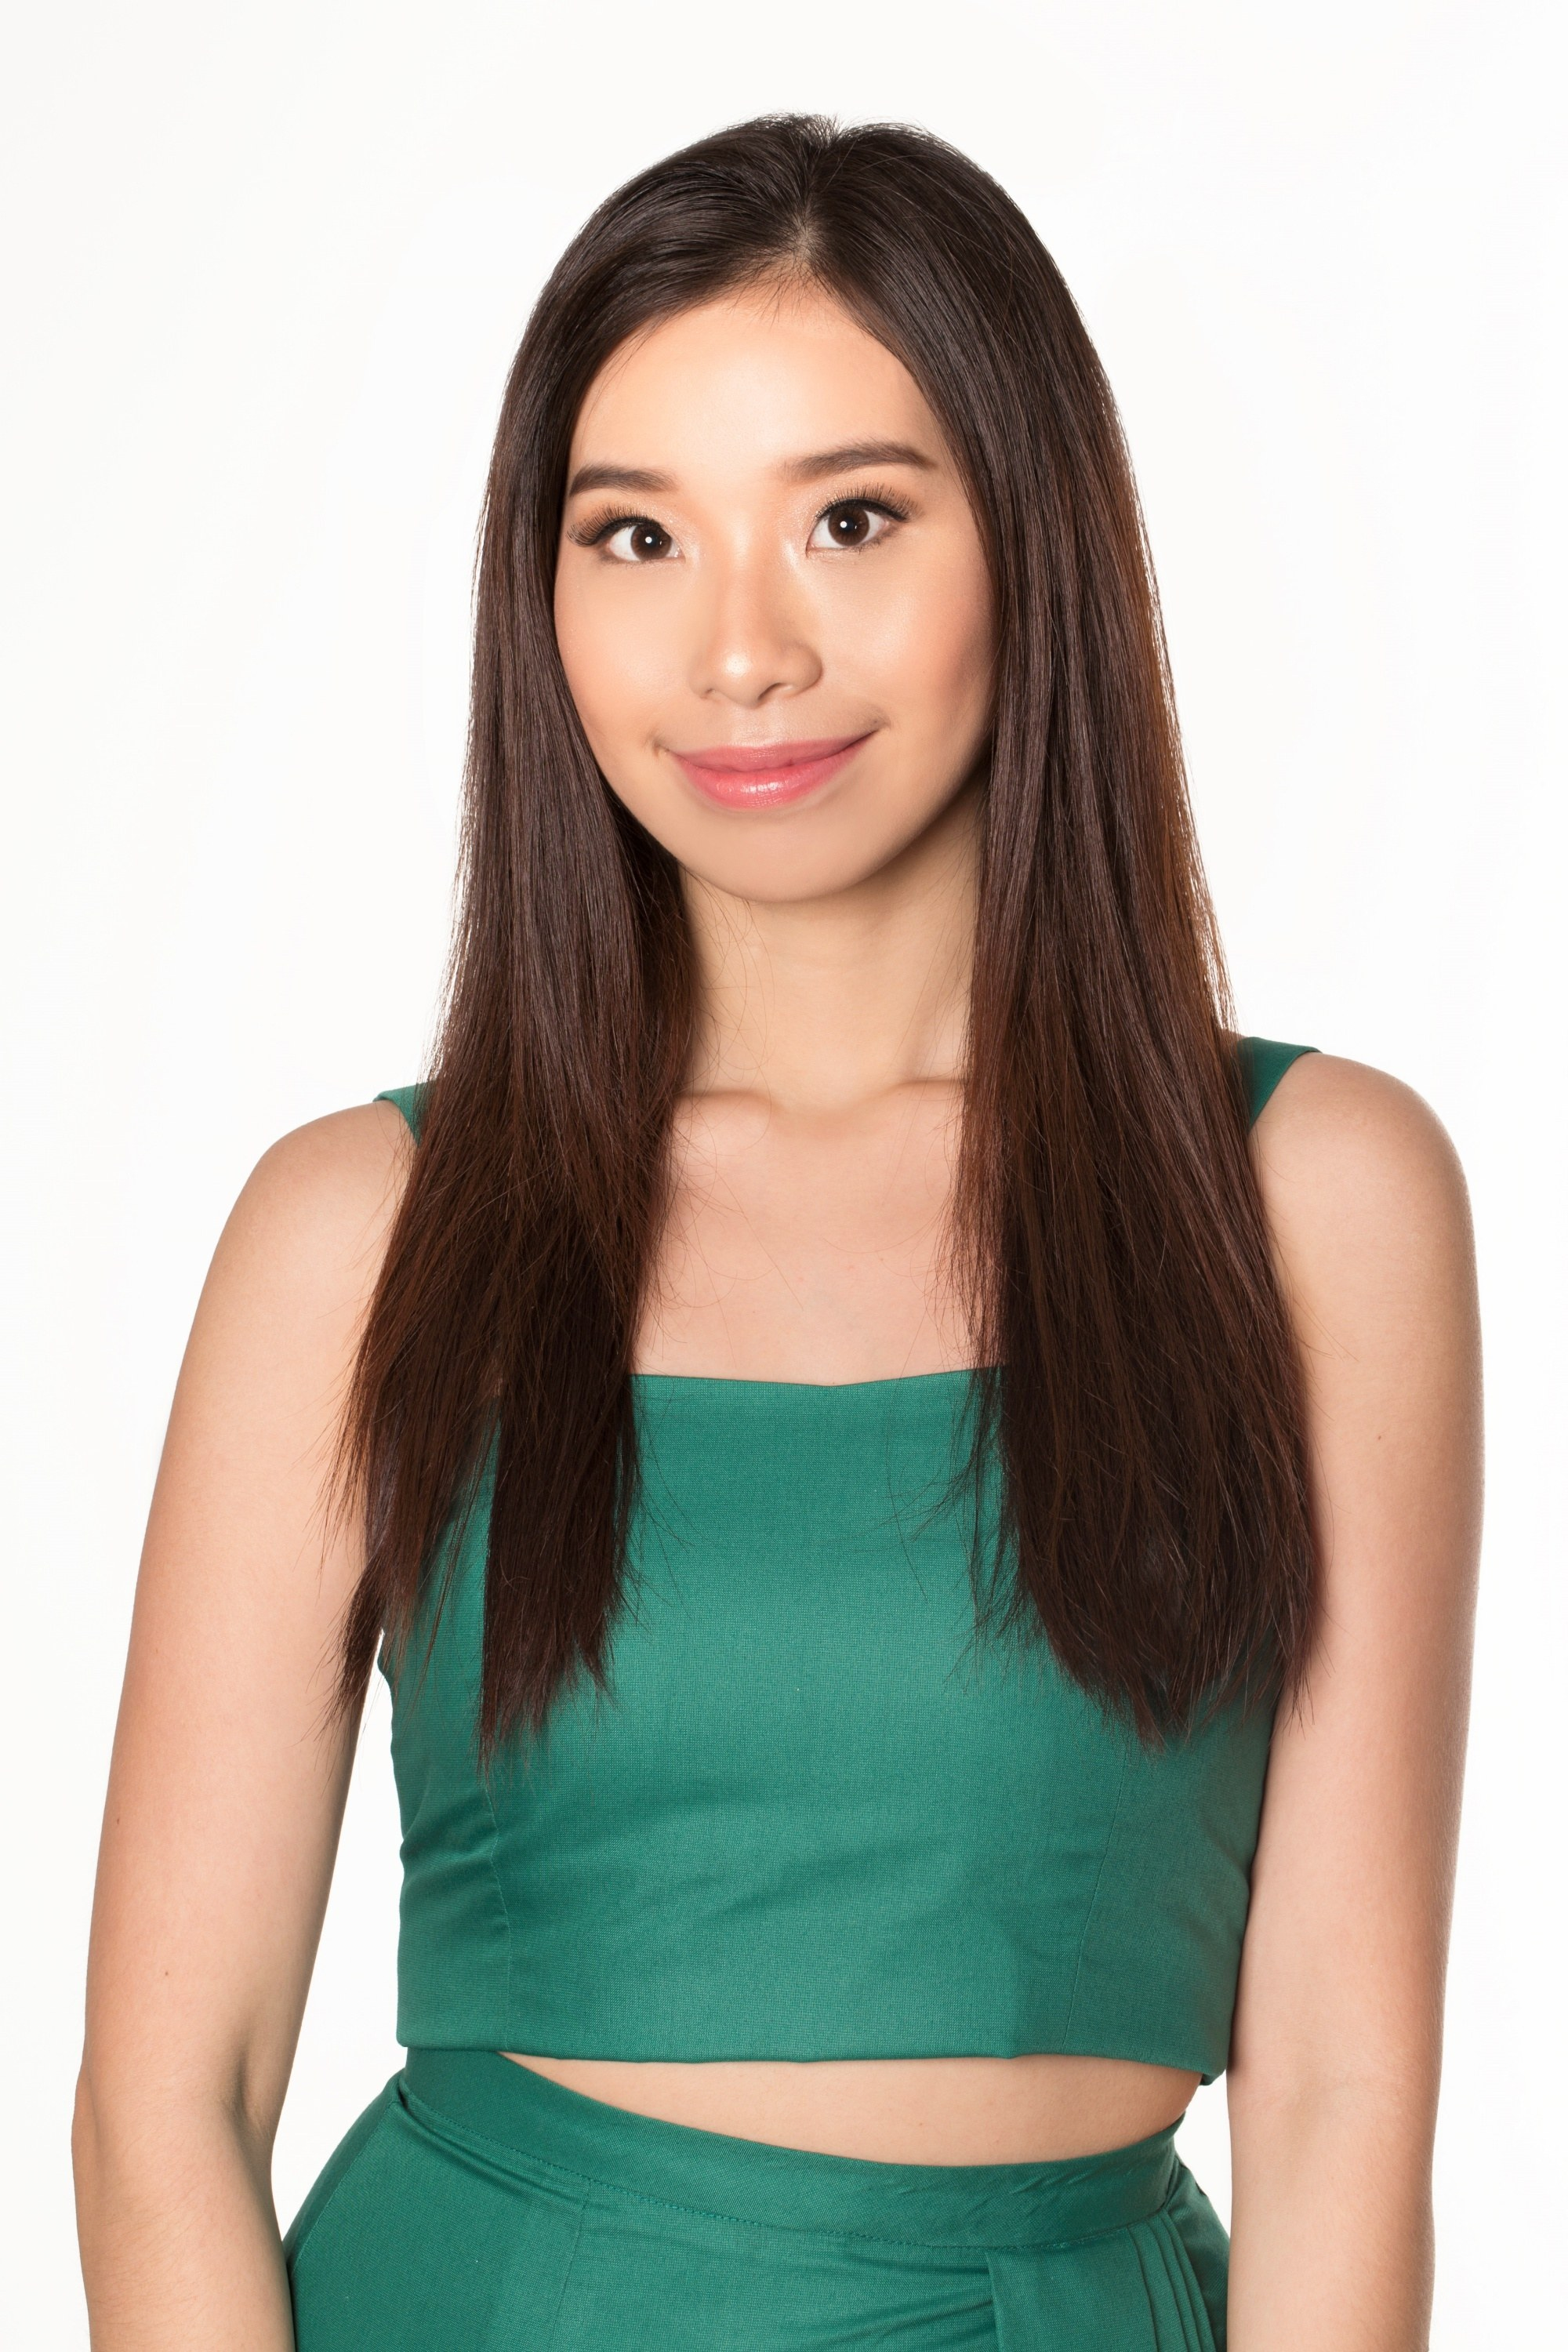 Hair facts: Asian woman with long dark straight hair wearing a green top and skirt